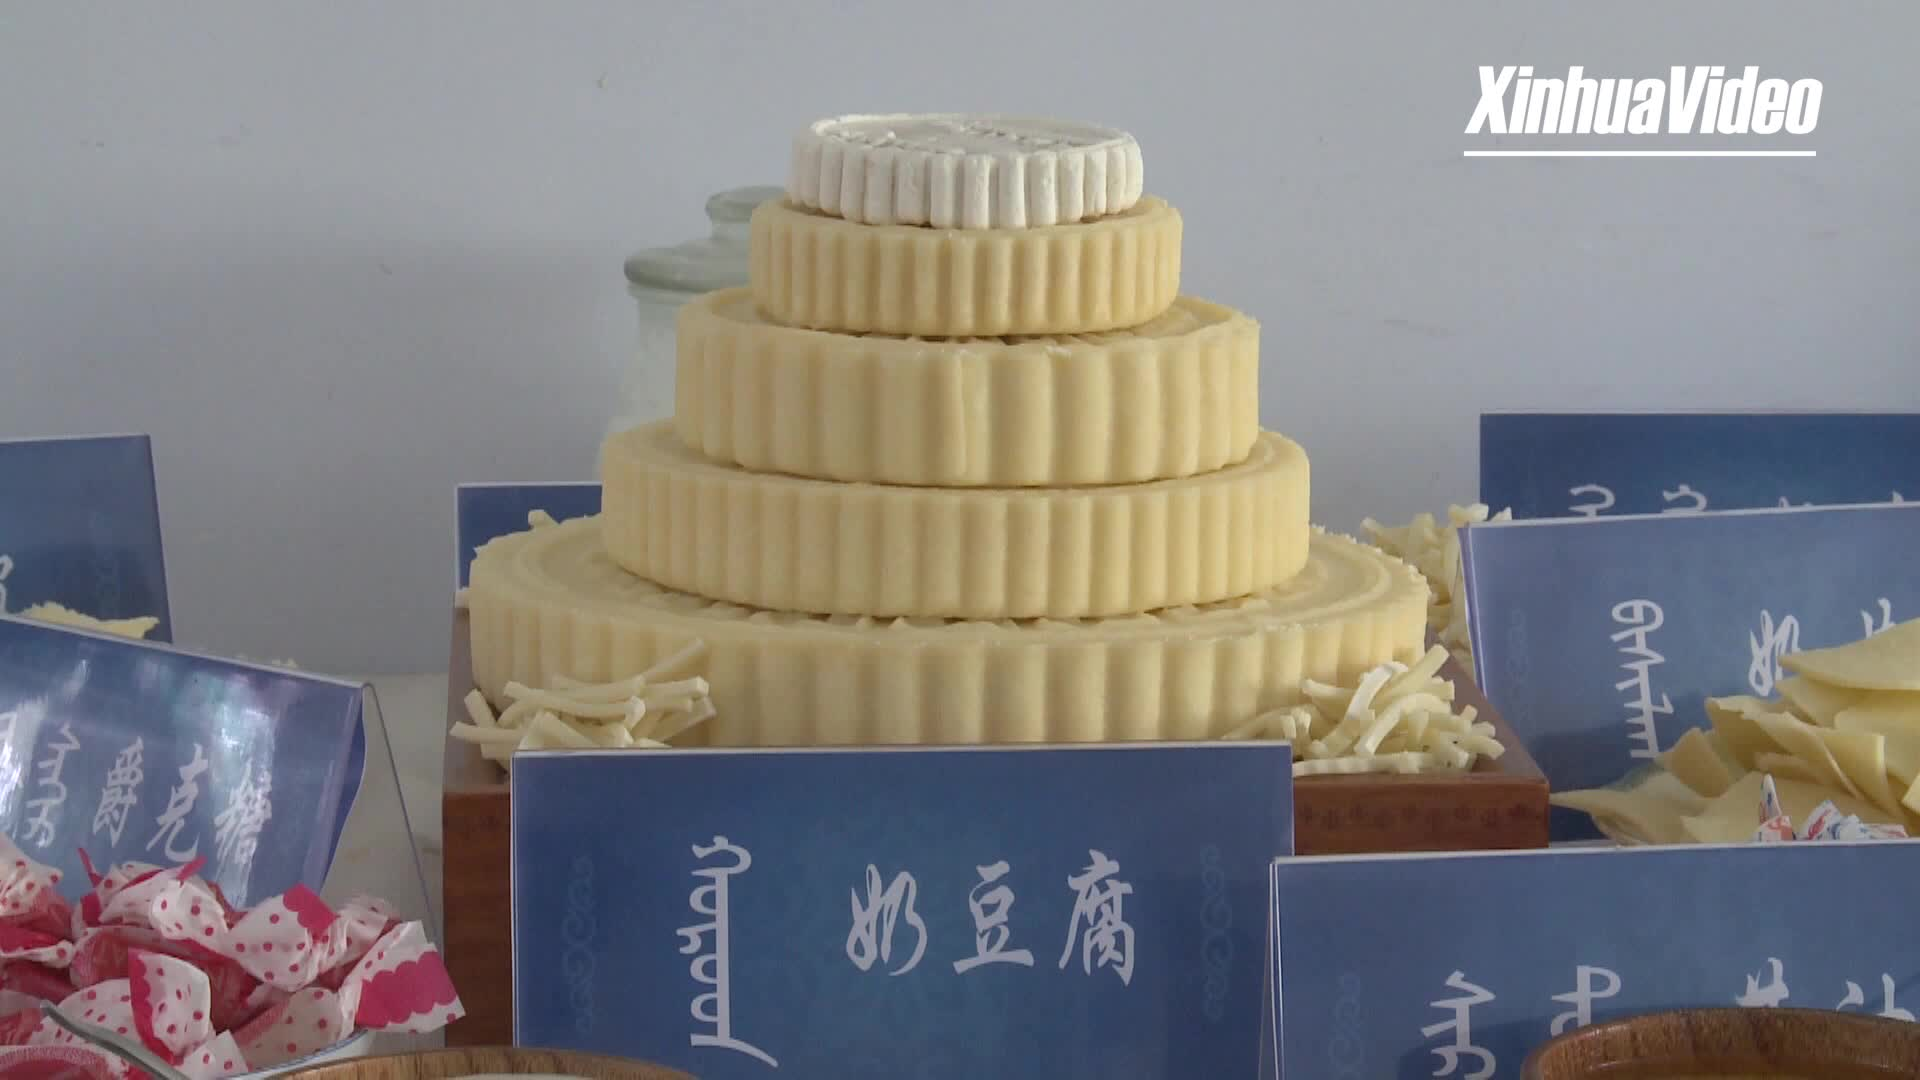 Inner Mongolia invests 230 mln yuan to support traditional dairy industry